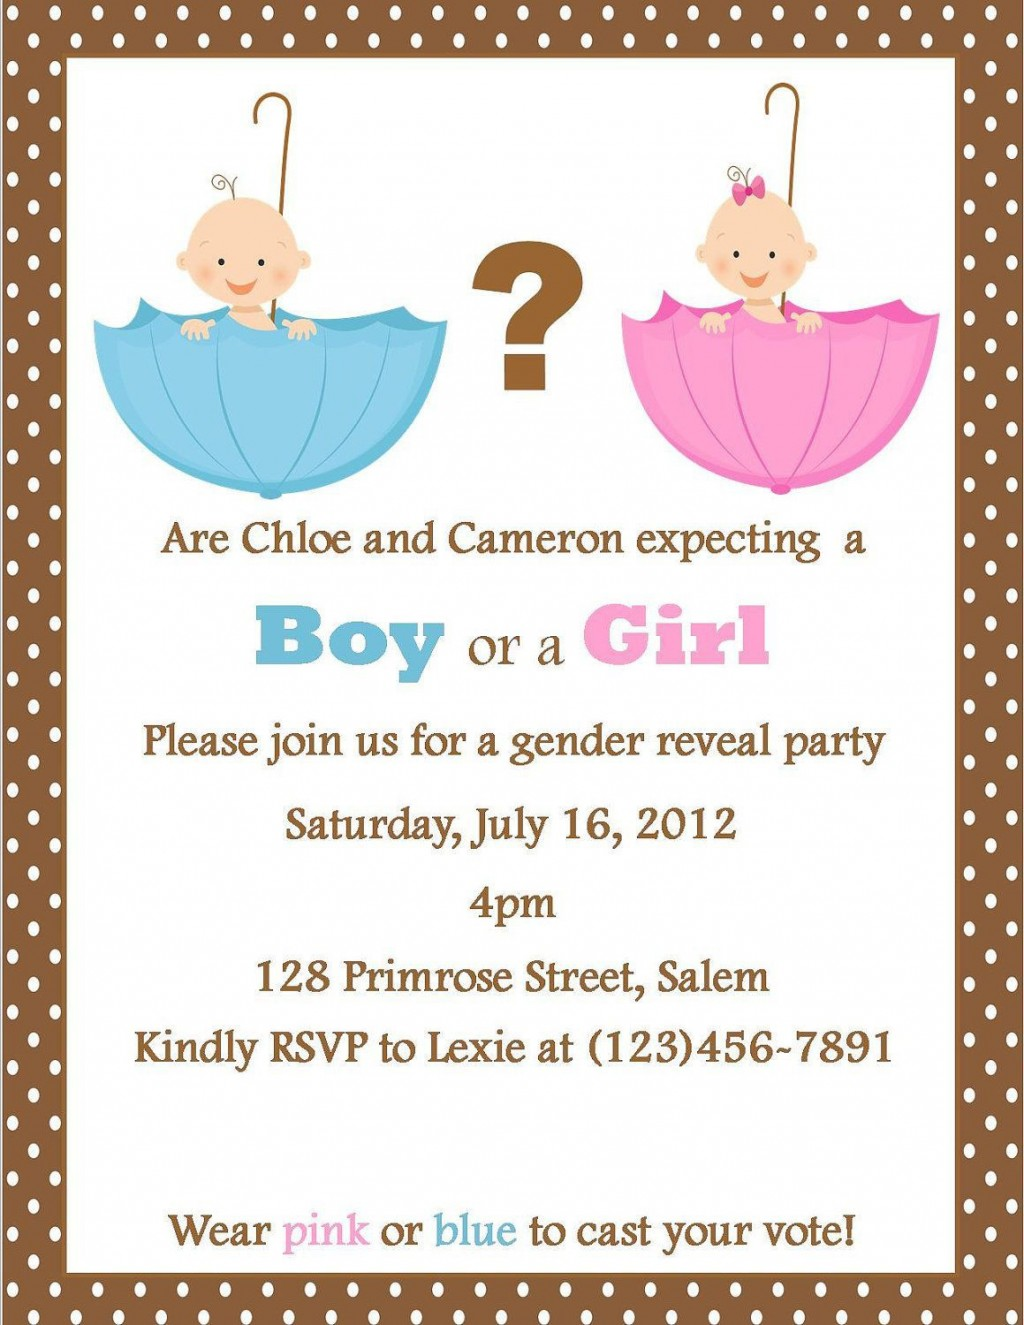 002 Best Gender Reveal Invitation Template High Resolution  Templates Party Free Printable MakerLarge